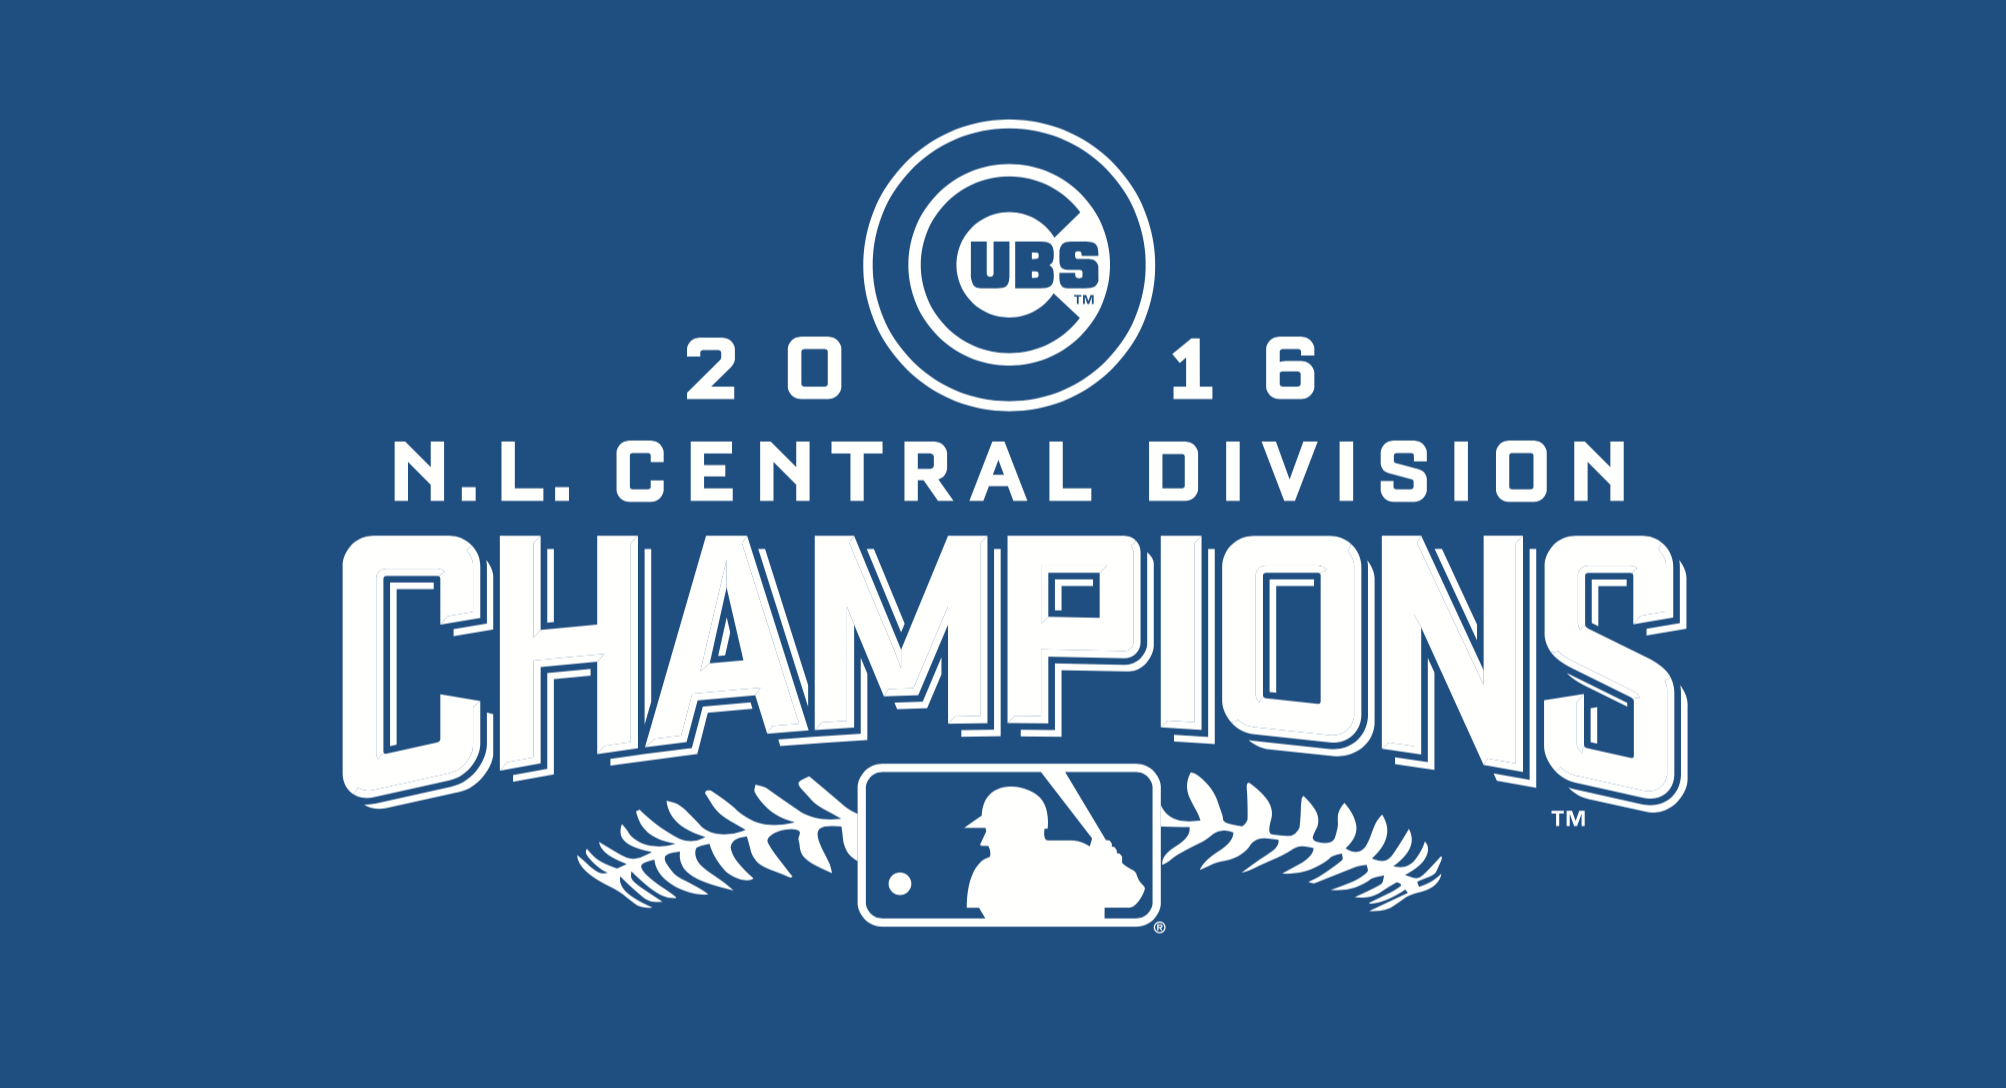 CUBS NL CHAMPIONS 1COLOR.png